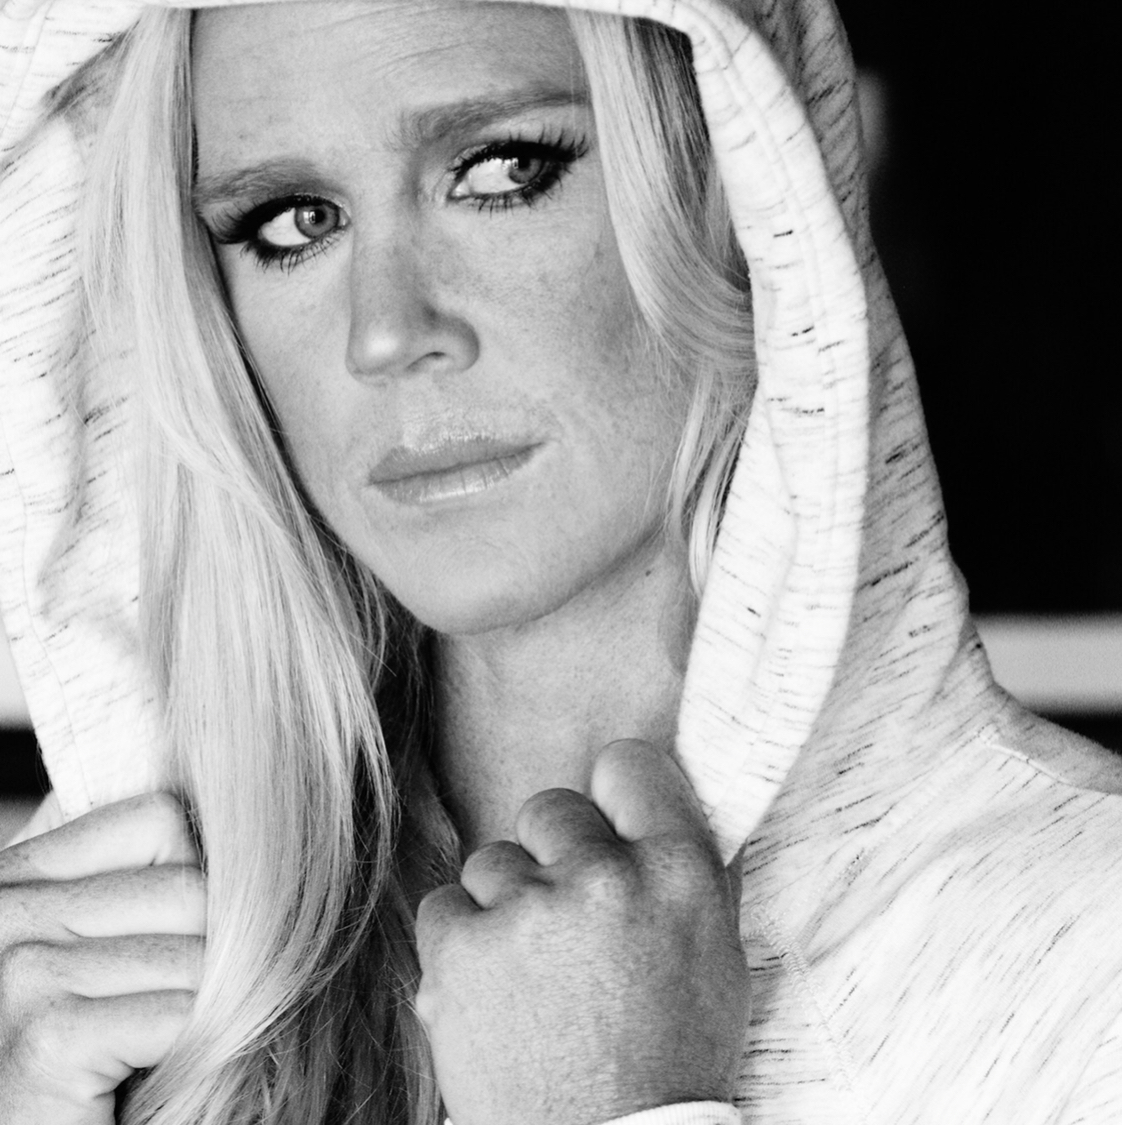 Avatar of Holly Holm